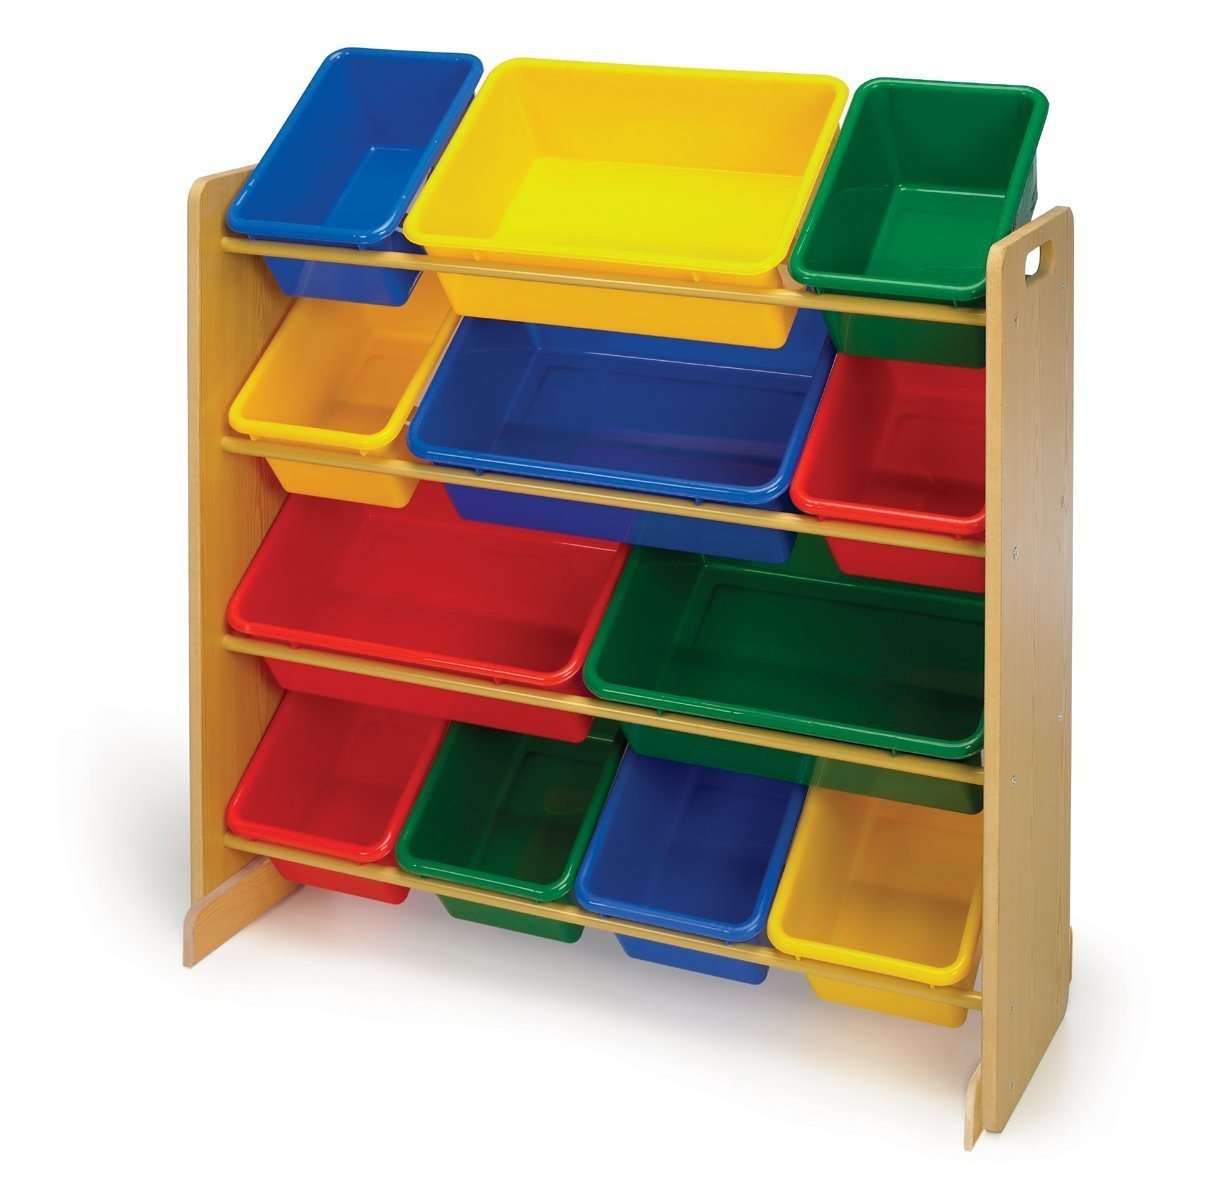 ... Bins, Primary Colors. Useful 4-tier toy organizer from Tot tutors;  great for containing blocks, crayons, toy trucks, dolls, and more ... - Tot Tutors Kids Toy Organizer With Storage Bins, Primary Colors